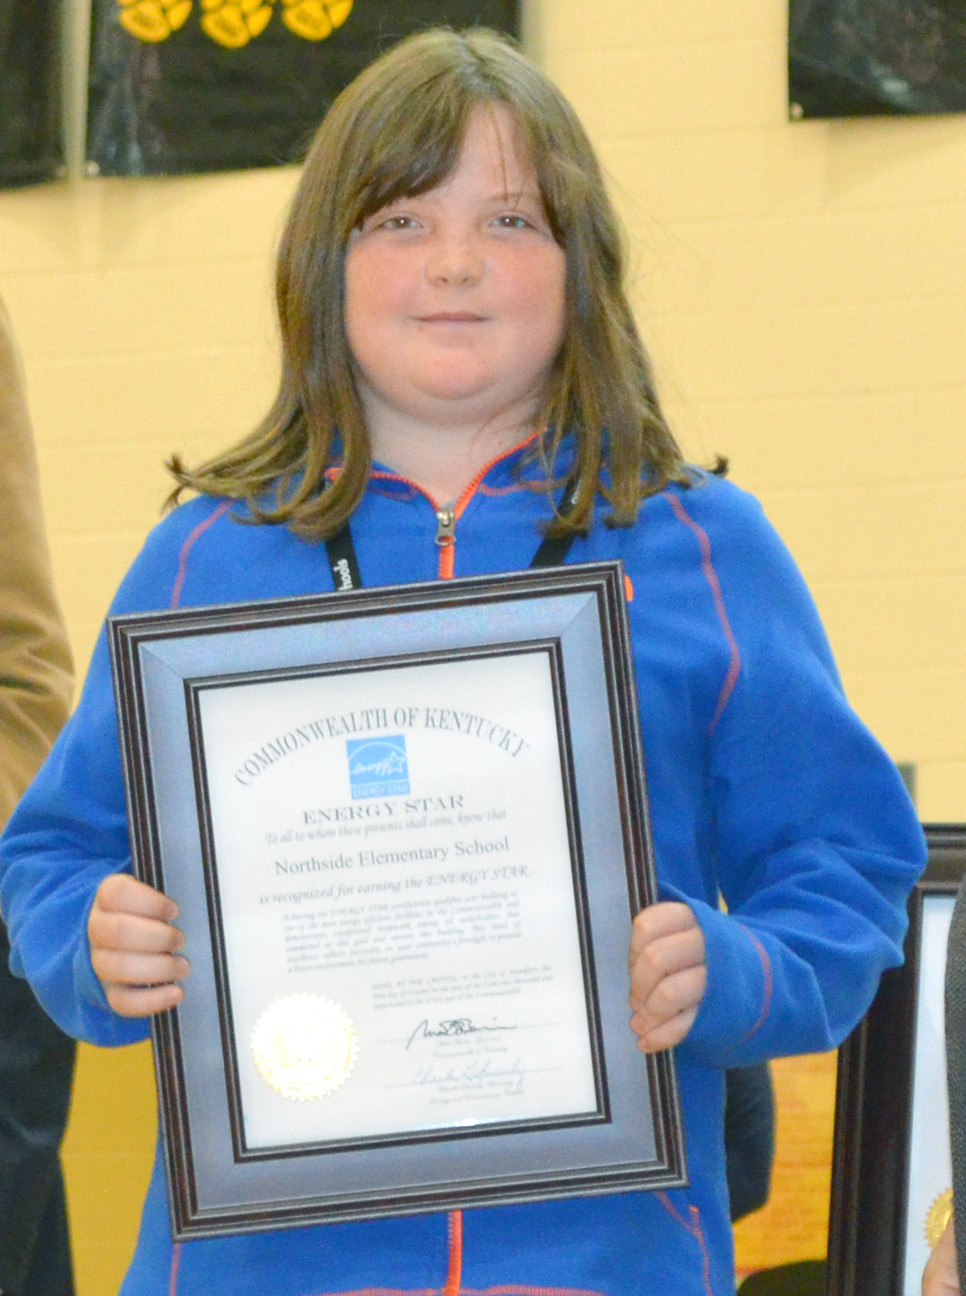 EMMA MULVIHILL, a fifth-grader at Northside Elementary, accepted her school's Energy Star certificate last Thursday, Oct. 20. All seven schools in the Woodford County Public Schools district are now certified as Energy Star Schools. (Photo by Bob Vlach)